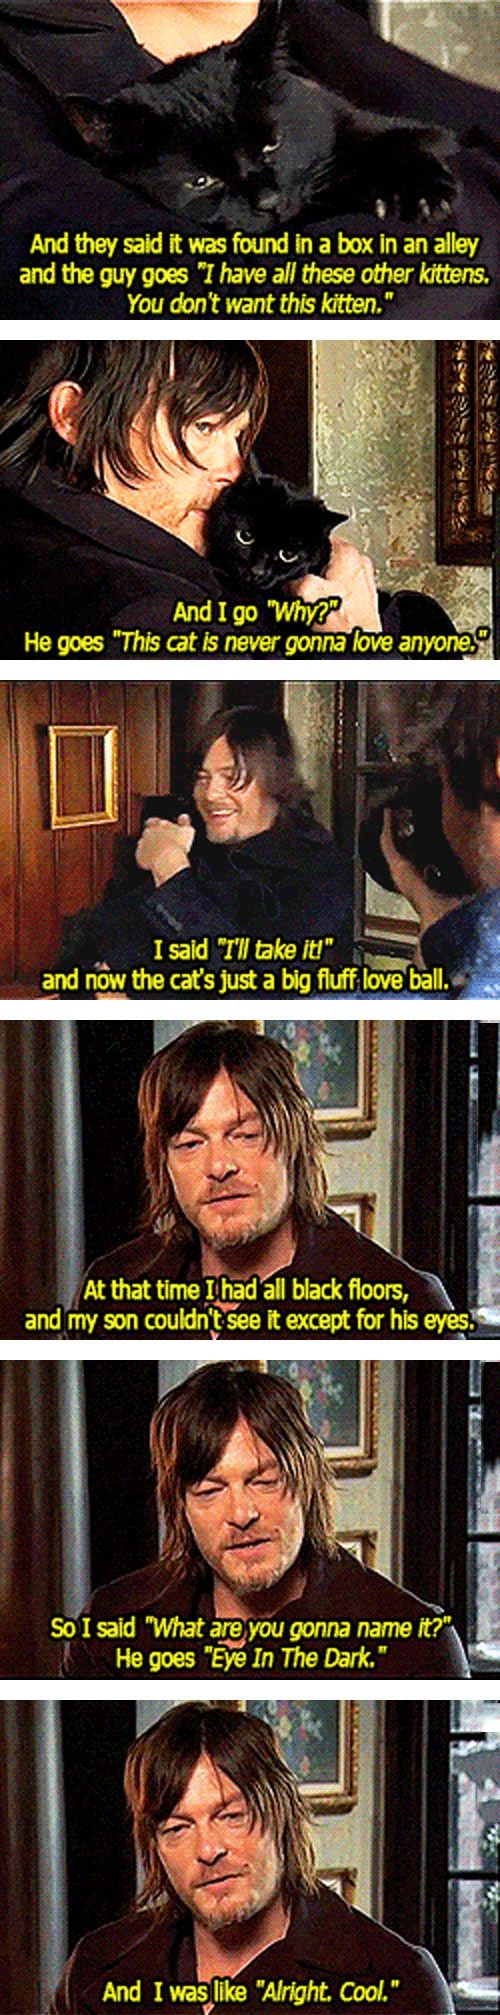 """Norman Reedus with his black cat, """"Eye in the Dark"""""""